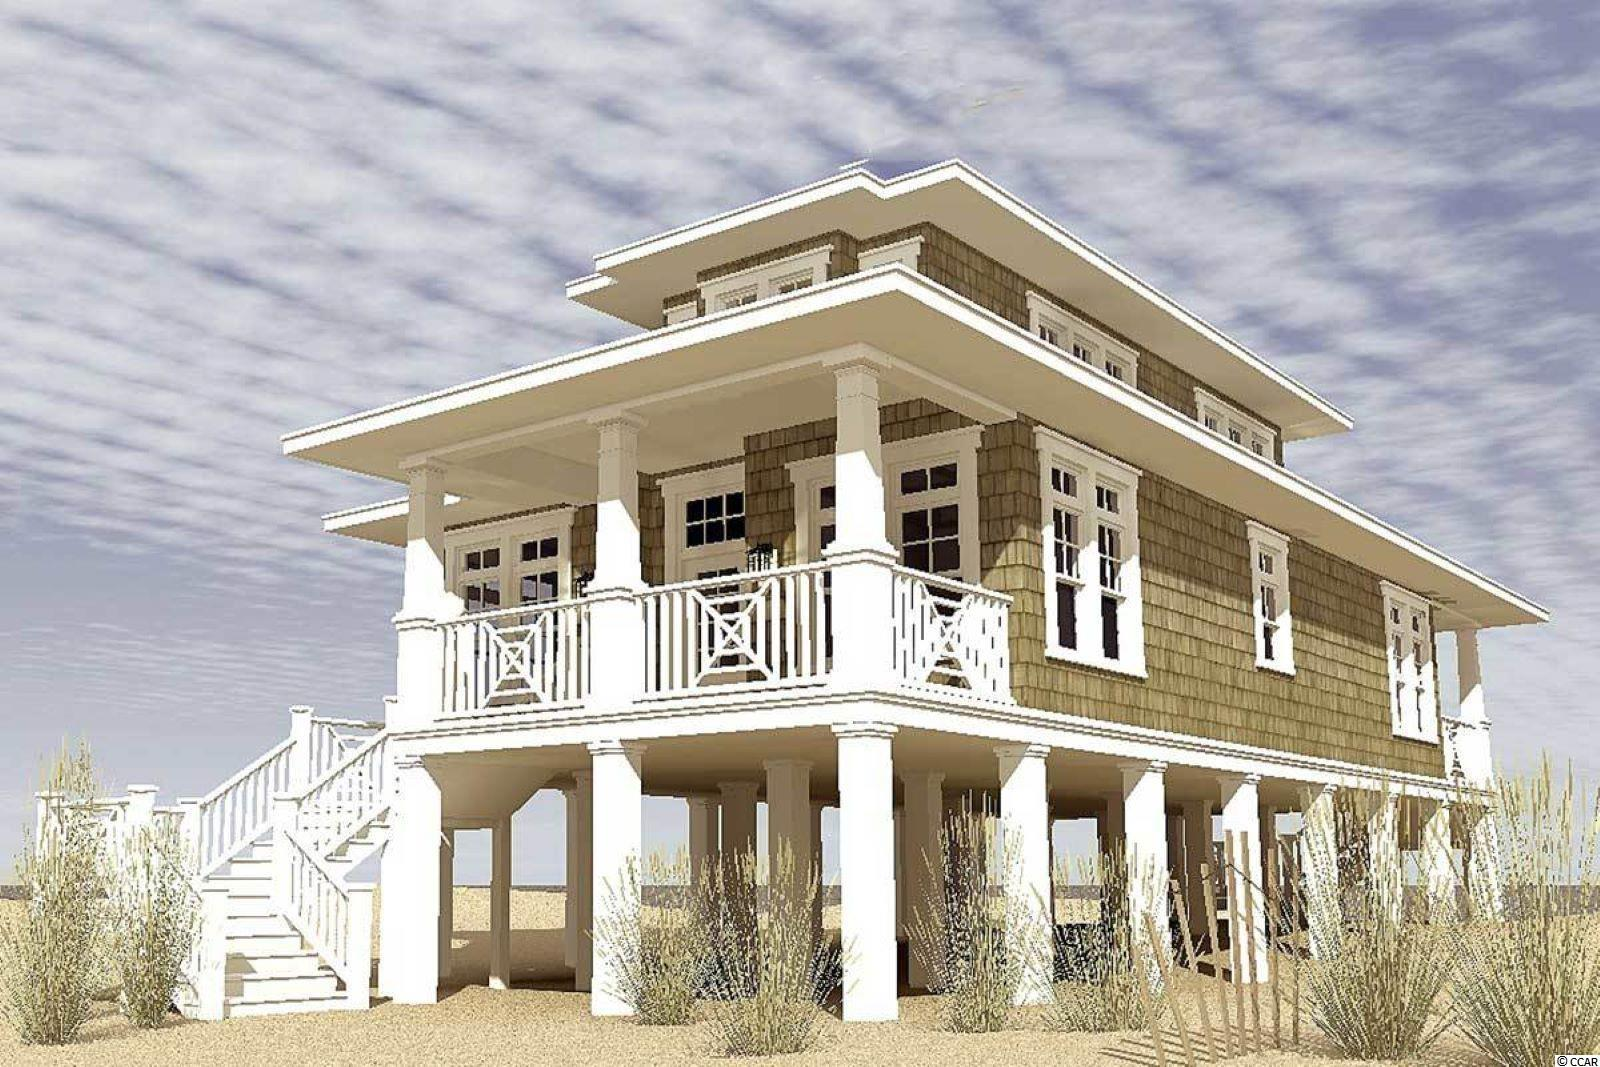 Here is one of the few opportunities left to build on the marsh in the low country of Pawleys Island, South Carolina!  Build this gorgeous custom raised beach home for a personal vacation escape that will feature a balcony with amazing marsh views, and spacious bedrooms and bathrooms!  Please schedule to discuss other possibilities for customizations for this property as this is just one of MANY OPTIONS!  There is no homeowner's association for this lot located in Litchfield Breezes.  There is no timeline to build and this lot sits directly on the marsh.  The options are ENDLESS as to the customizations this build allows you to TAILOR TO YOUR STANDARDS!  As a bonus, you will have a 500-foot dock that you share with only one neighbor which goes out into the marsh.  Enjoy a sunrise, and the scenic views of the low country and wildlife and views of the ocean in the distance.  Minutes to Litchfield beach access, and a quick ten-minute drive to Huntington Beach State Park, you will have many options to explore the beauty of the area.  Schedule to see and discuss the many possibilities building on this lot has to offer!